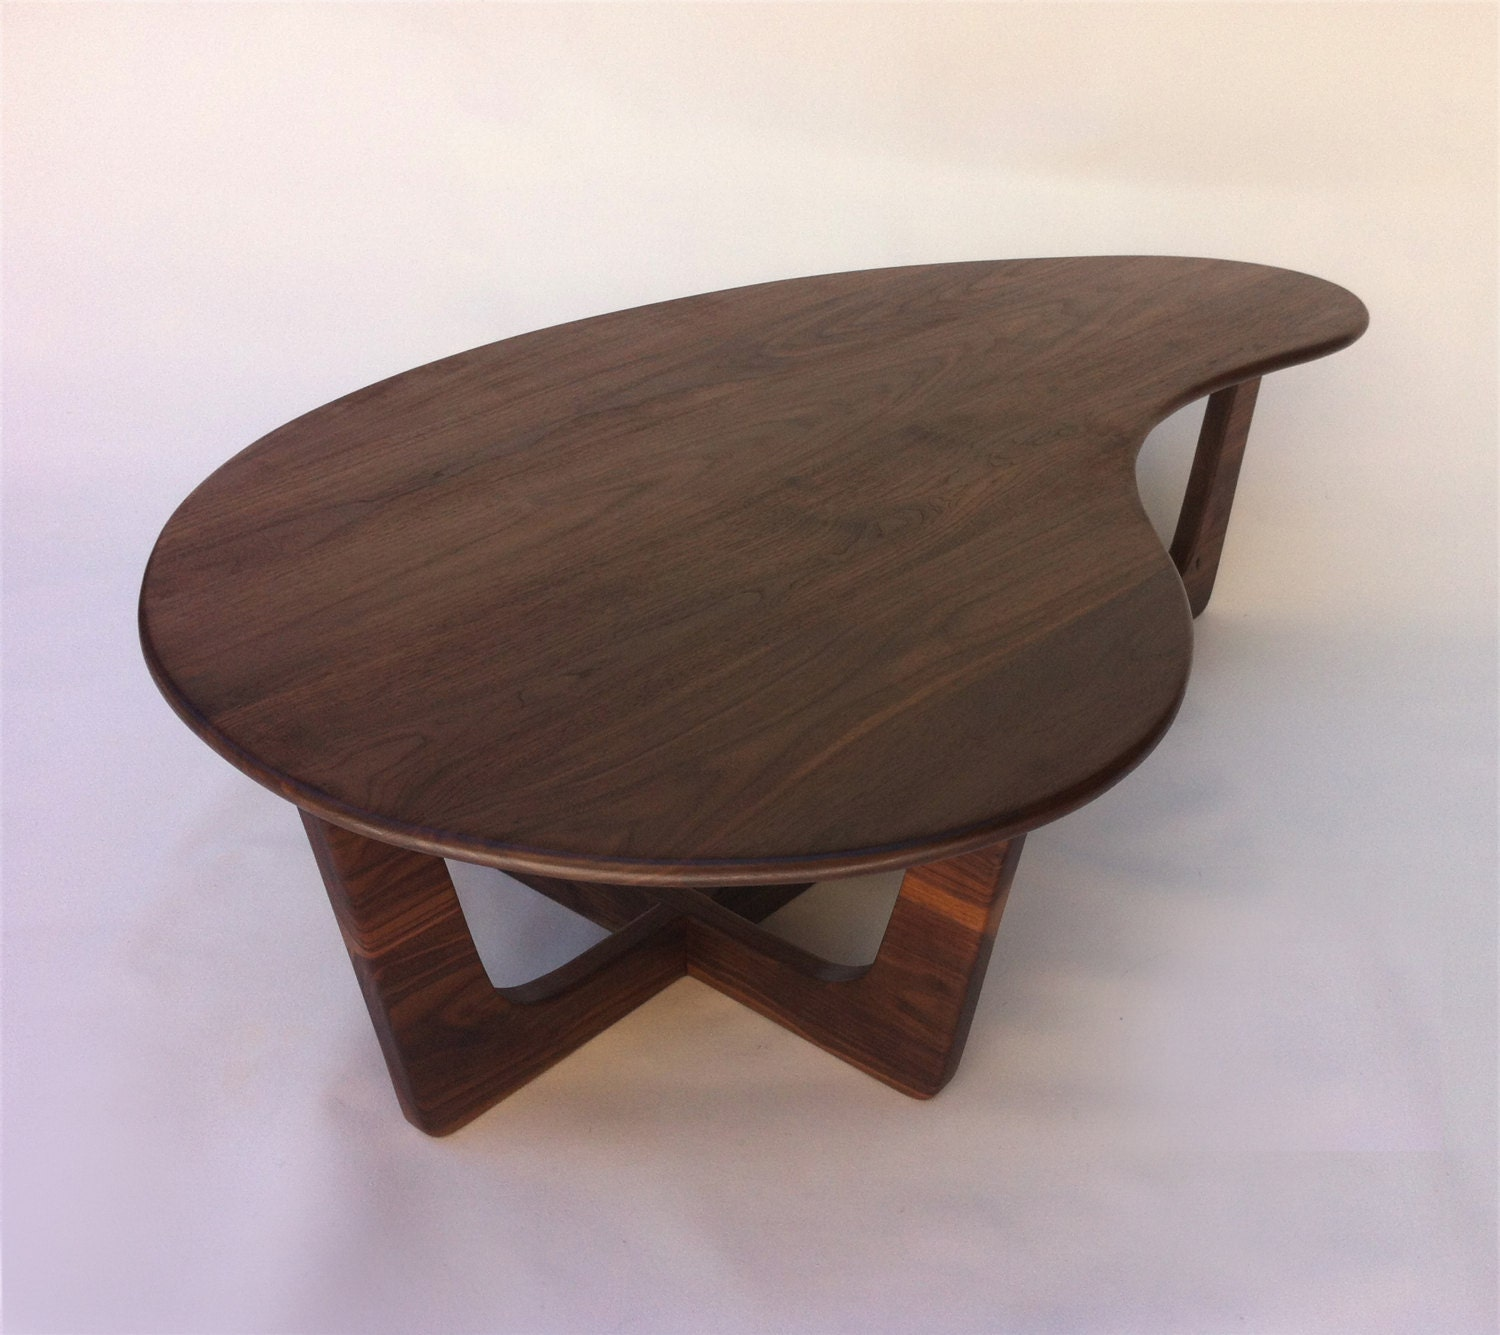 60 Kidney Bean Cocktail Table Mid Century Modern